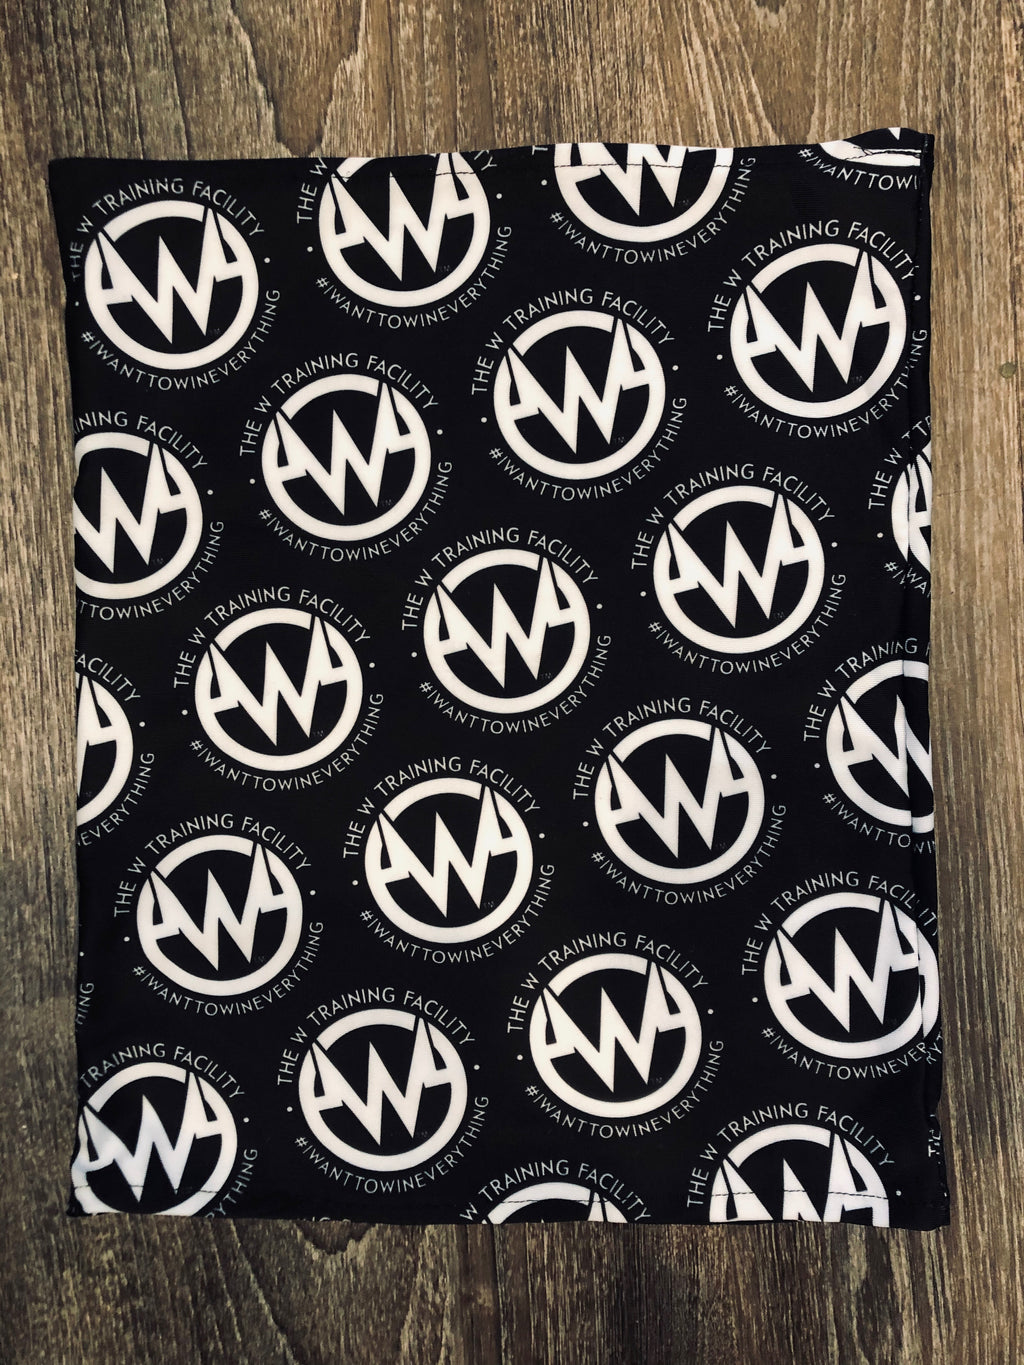 Microfiber Neck Sock || The W Training Facility